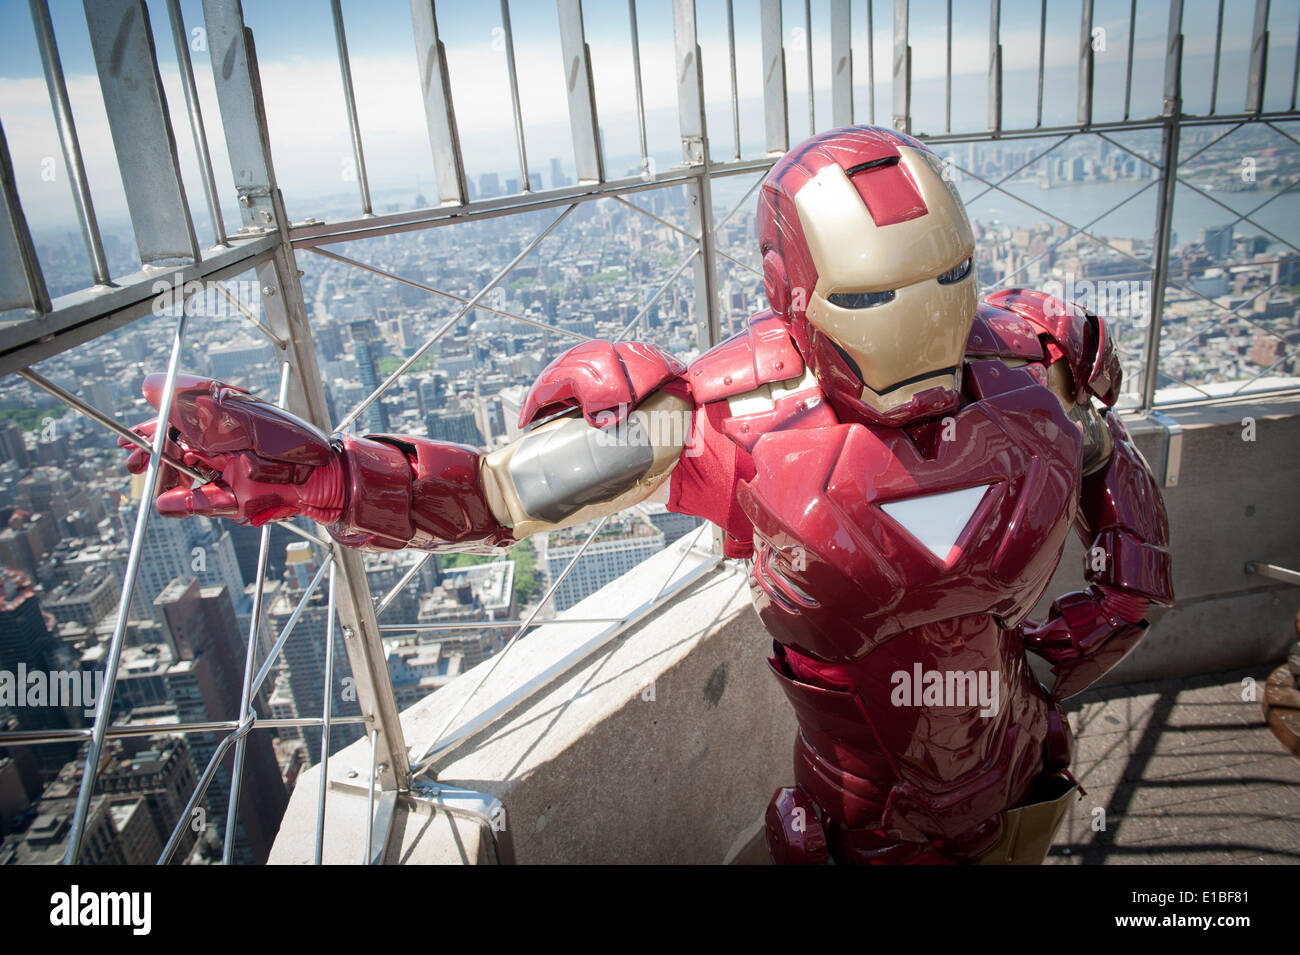 Manhattan, New York, USA. 29. Mai 2014. Schauspieler verkleidet als Iron Man Charakter im PAL Centennial Ereignis am Empire State Building. Bryan Smith/ZUMAPRESS.com/Alamy © Live-Nachrichten Stockbild